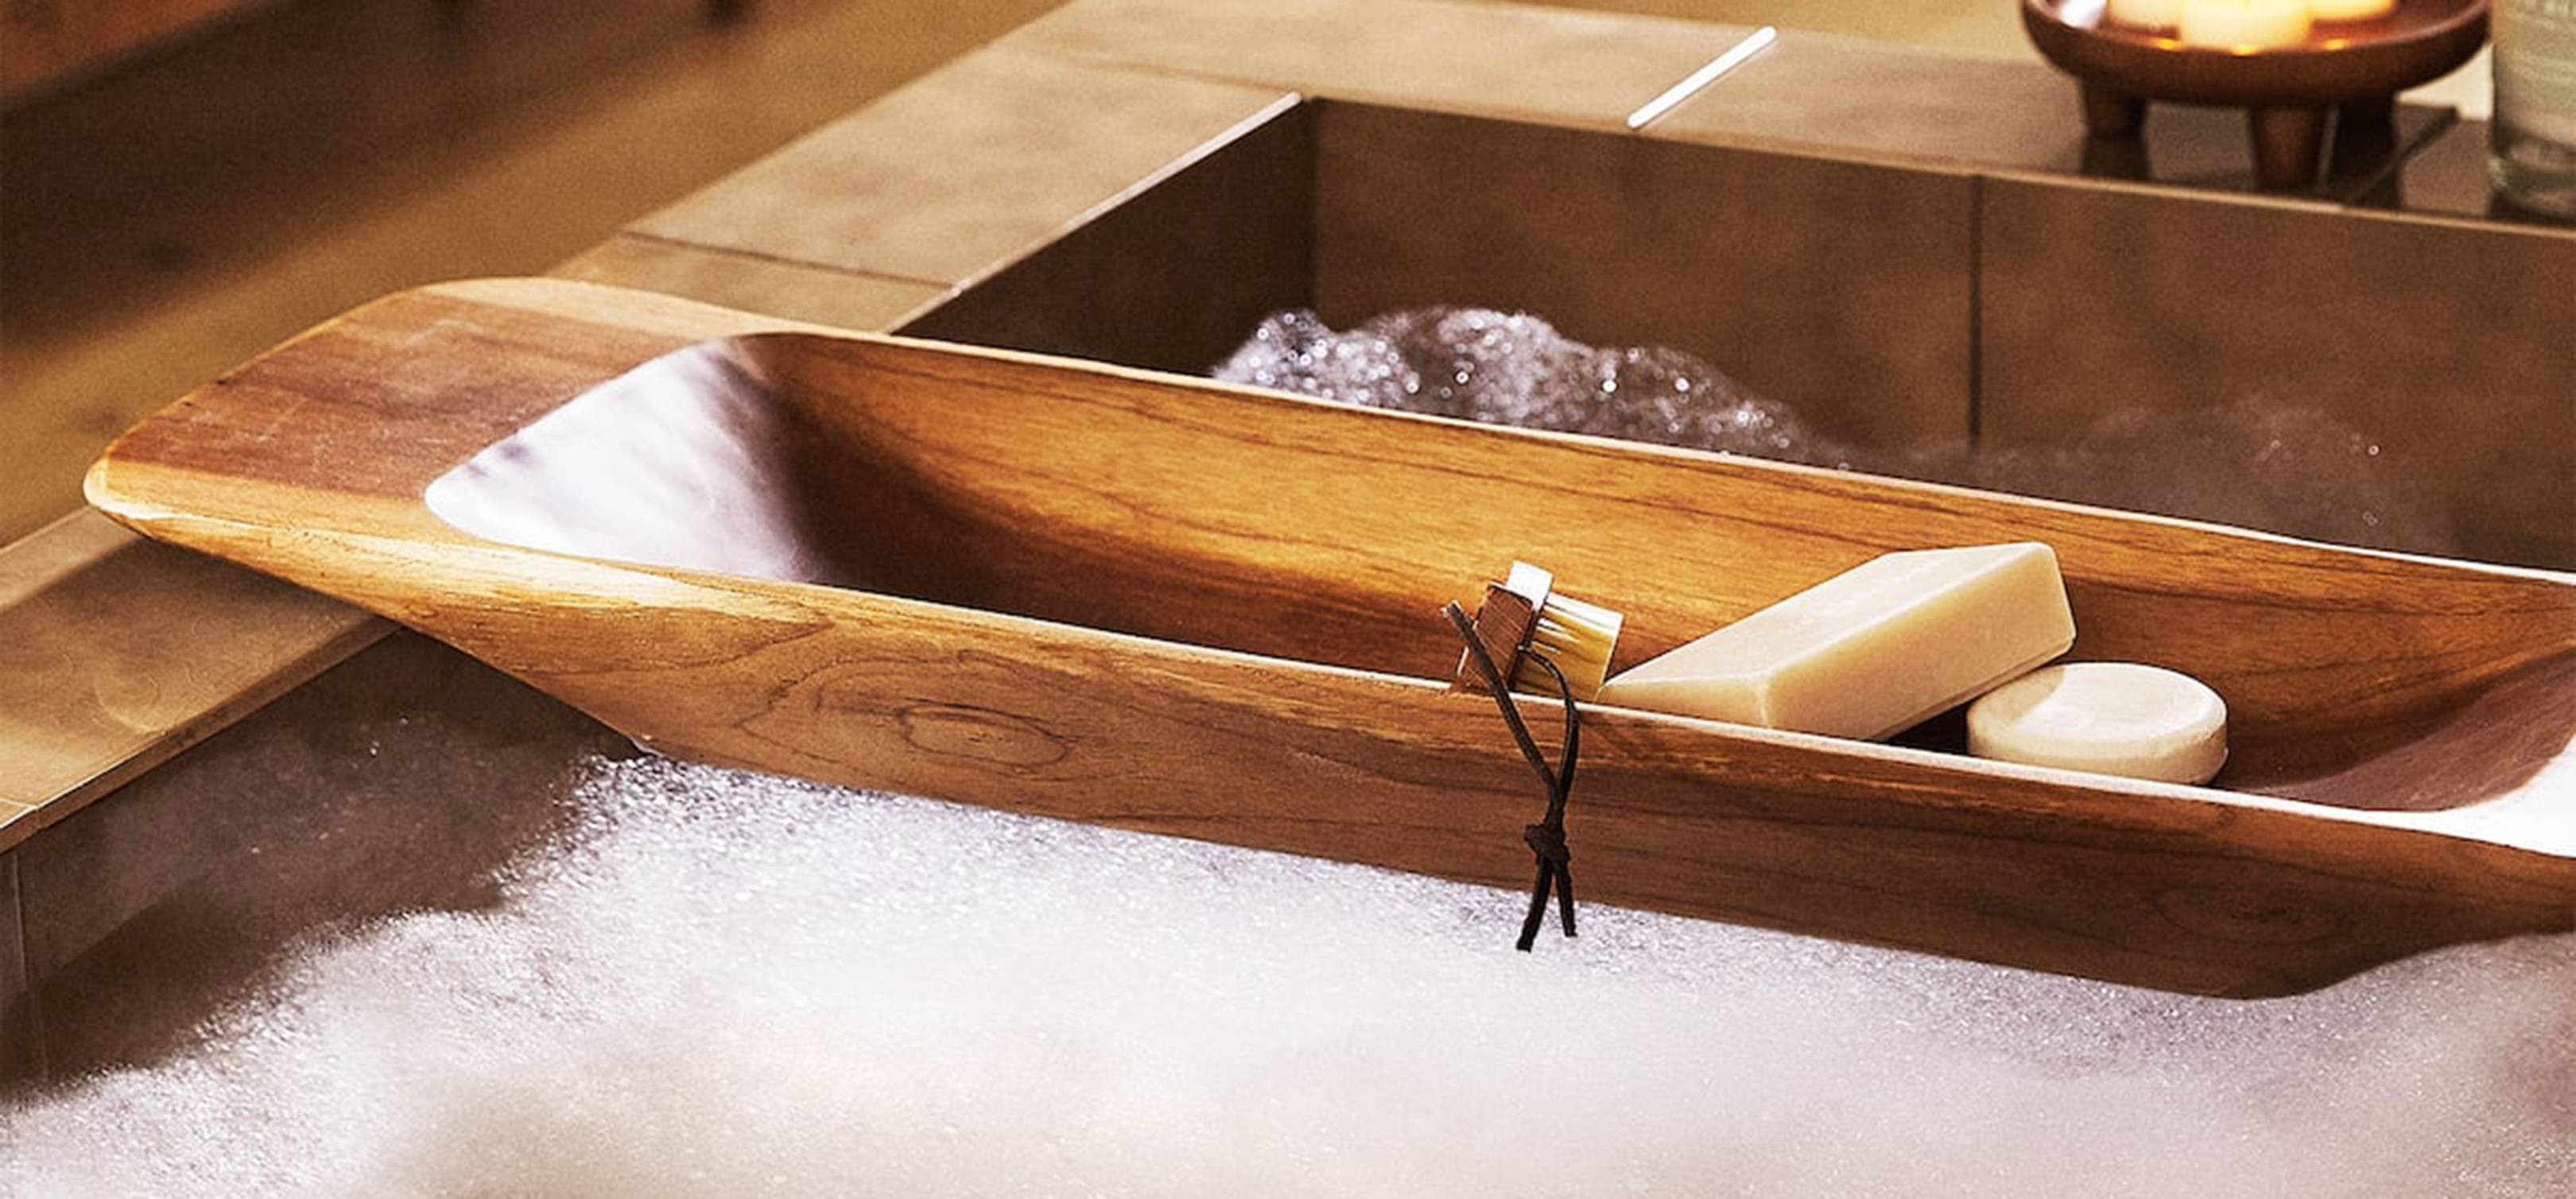 The Best Bath Trays 2020 To Elevate Your Bath Time Glamour Uk